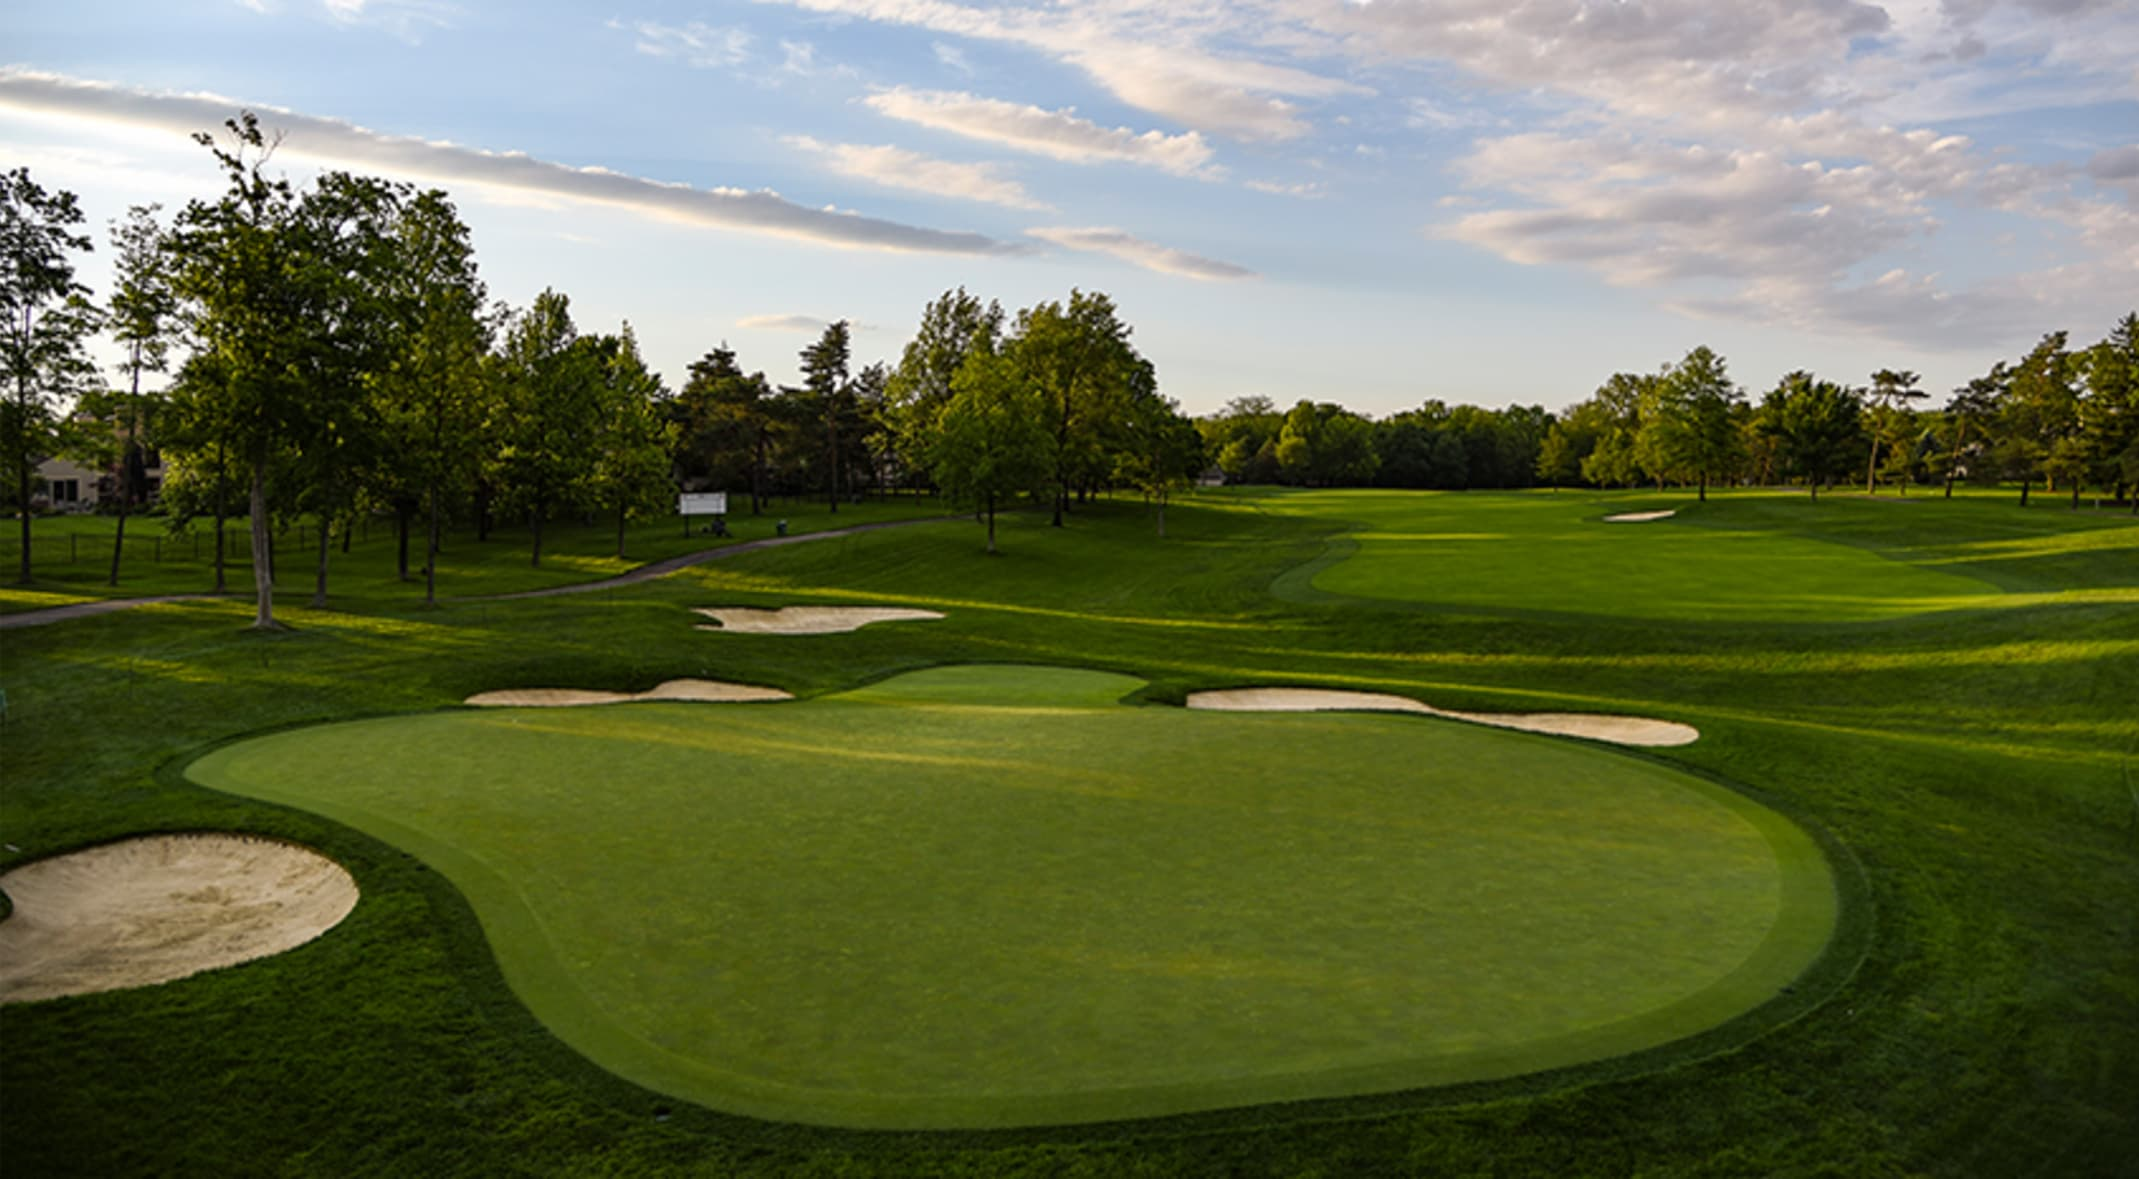 PGA TOUR partners with Workday to present the Workday Charity Open ...